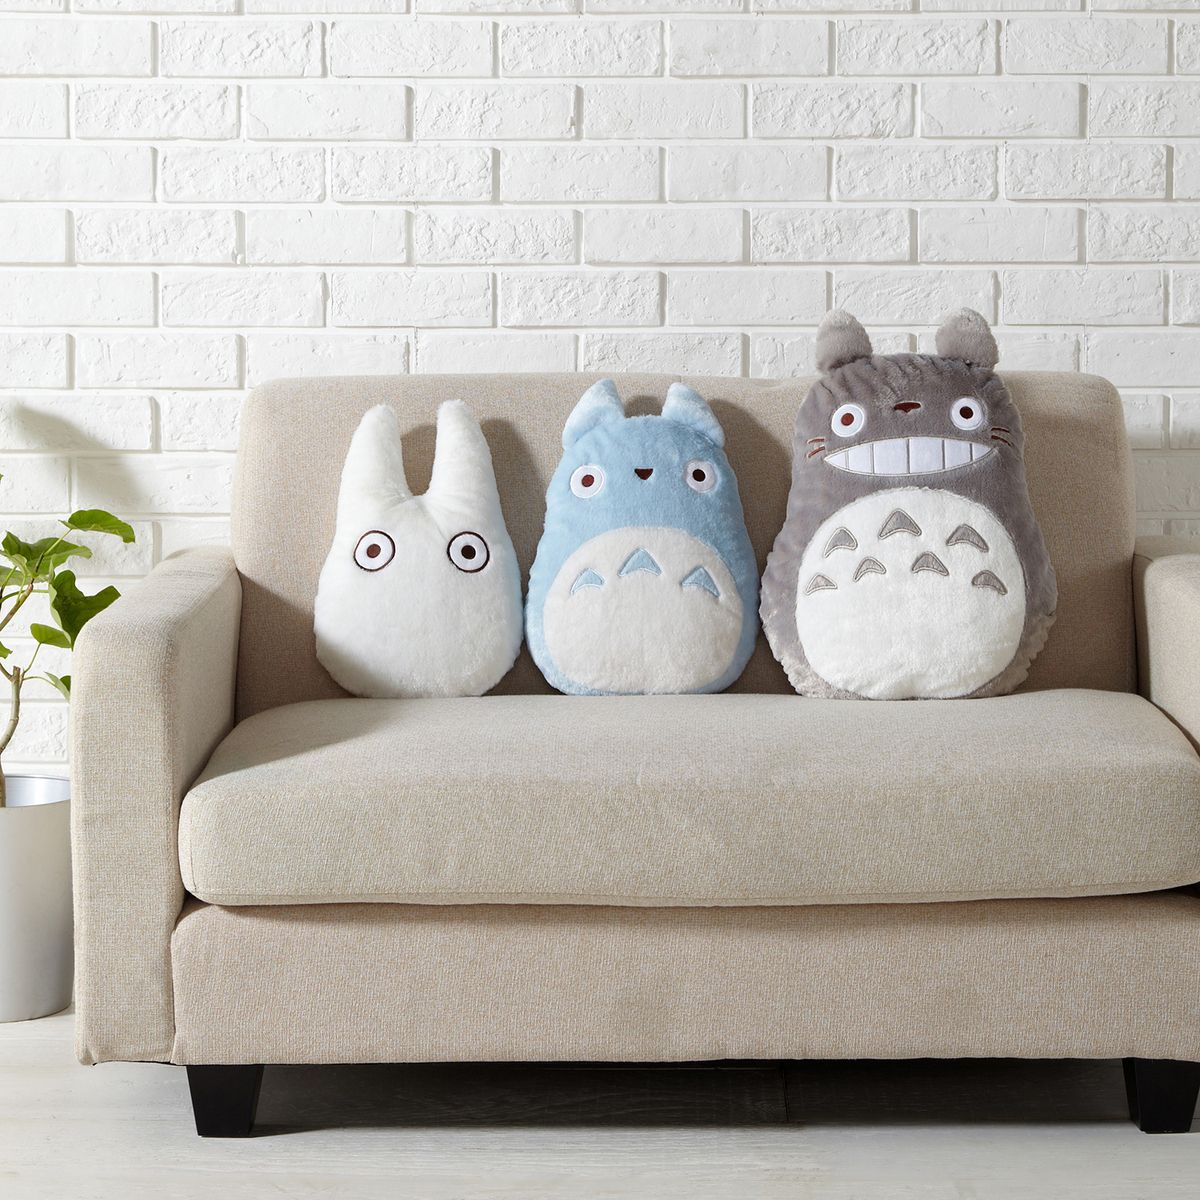 Totoro | Decorative Pillows & Cushions | Pinterest | Totoro ...